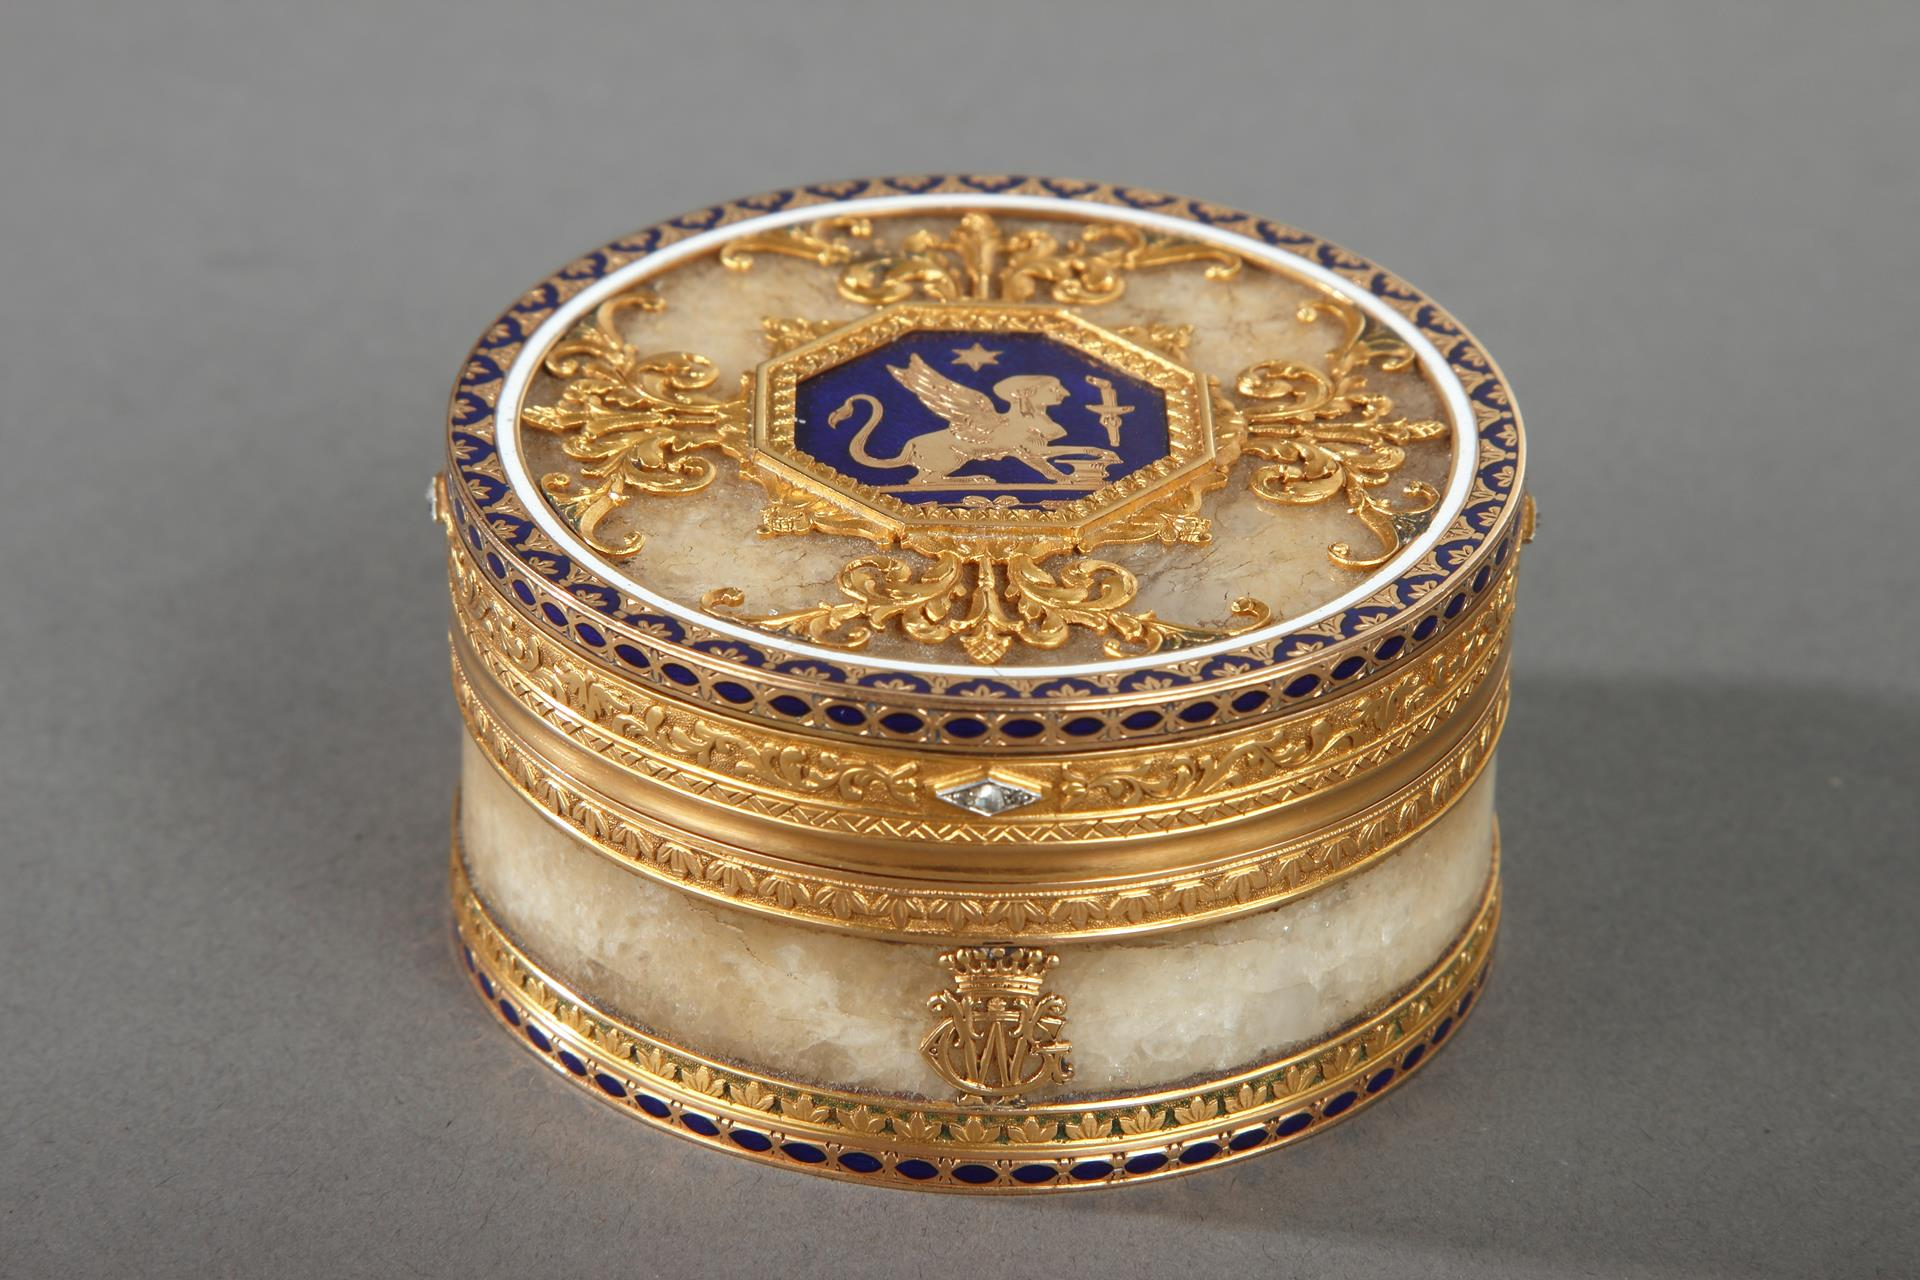 QUARTZ AND GOLD SNUFF BOX WITH ENAMEL AND DIAMOND. <br/> ROZET AND FISHMEINSTER, LATE 19TH CENTURY.